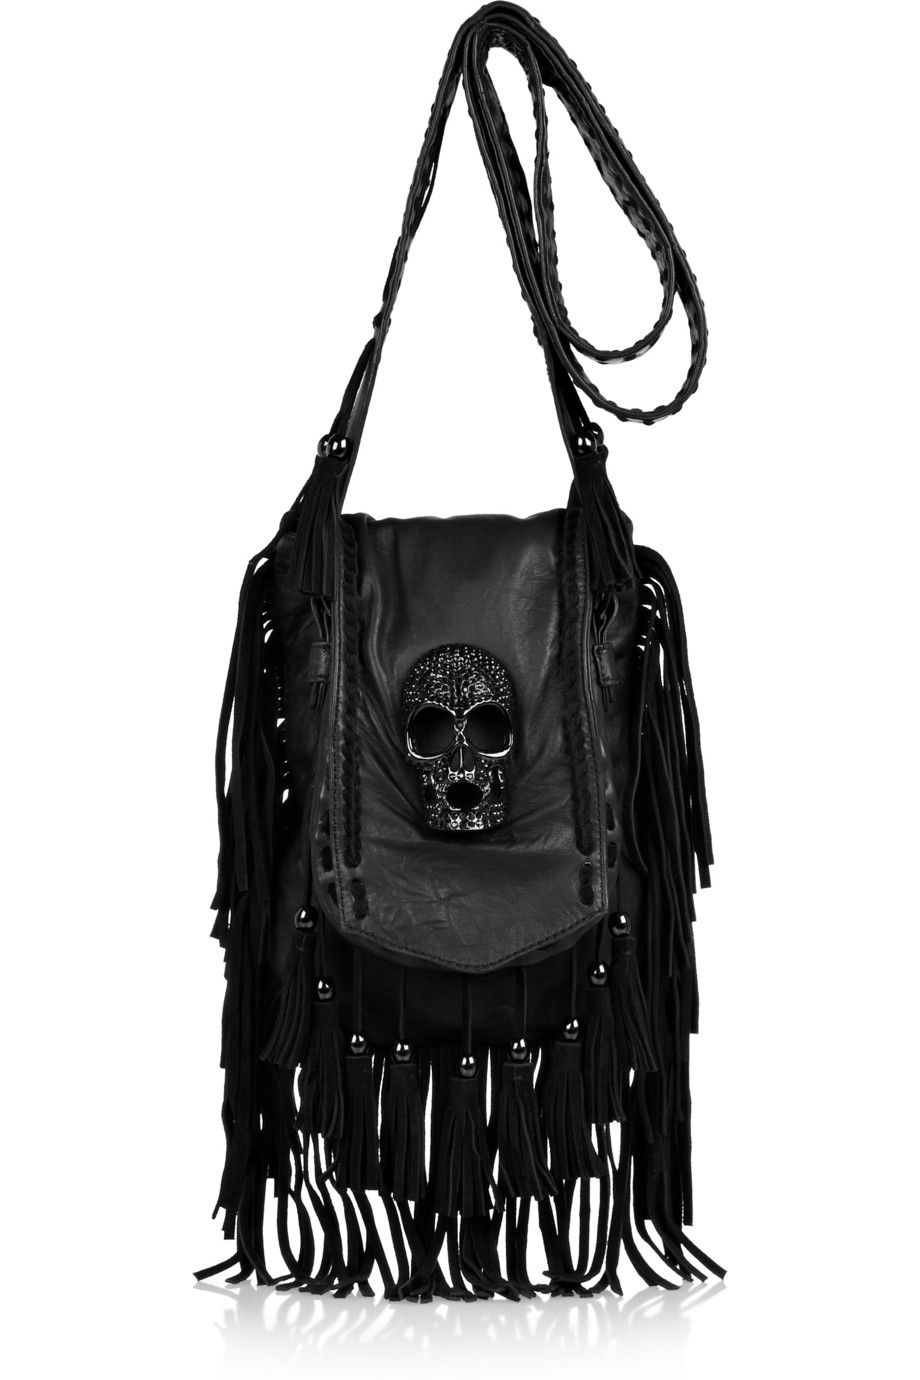 9a1db7b294a9 Black leather Adjustable buckle-fastening shoulder strap Beaded suede  fringing and trims